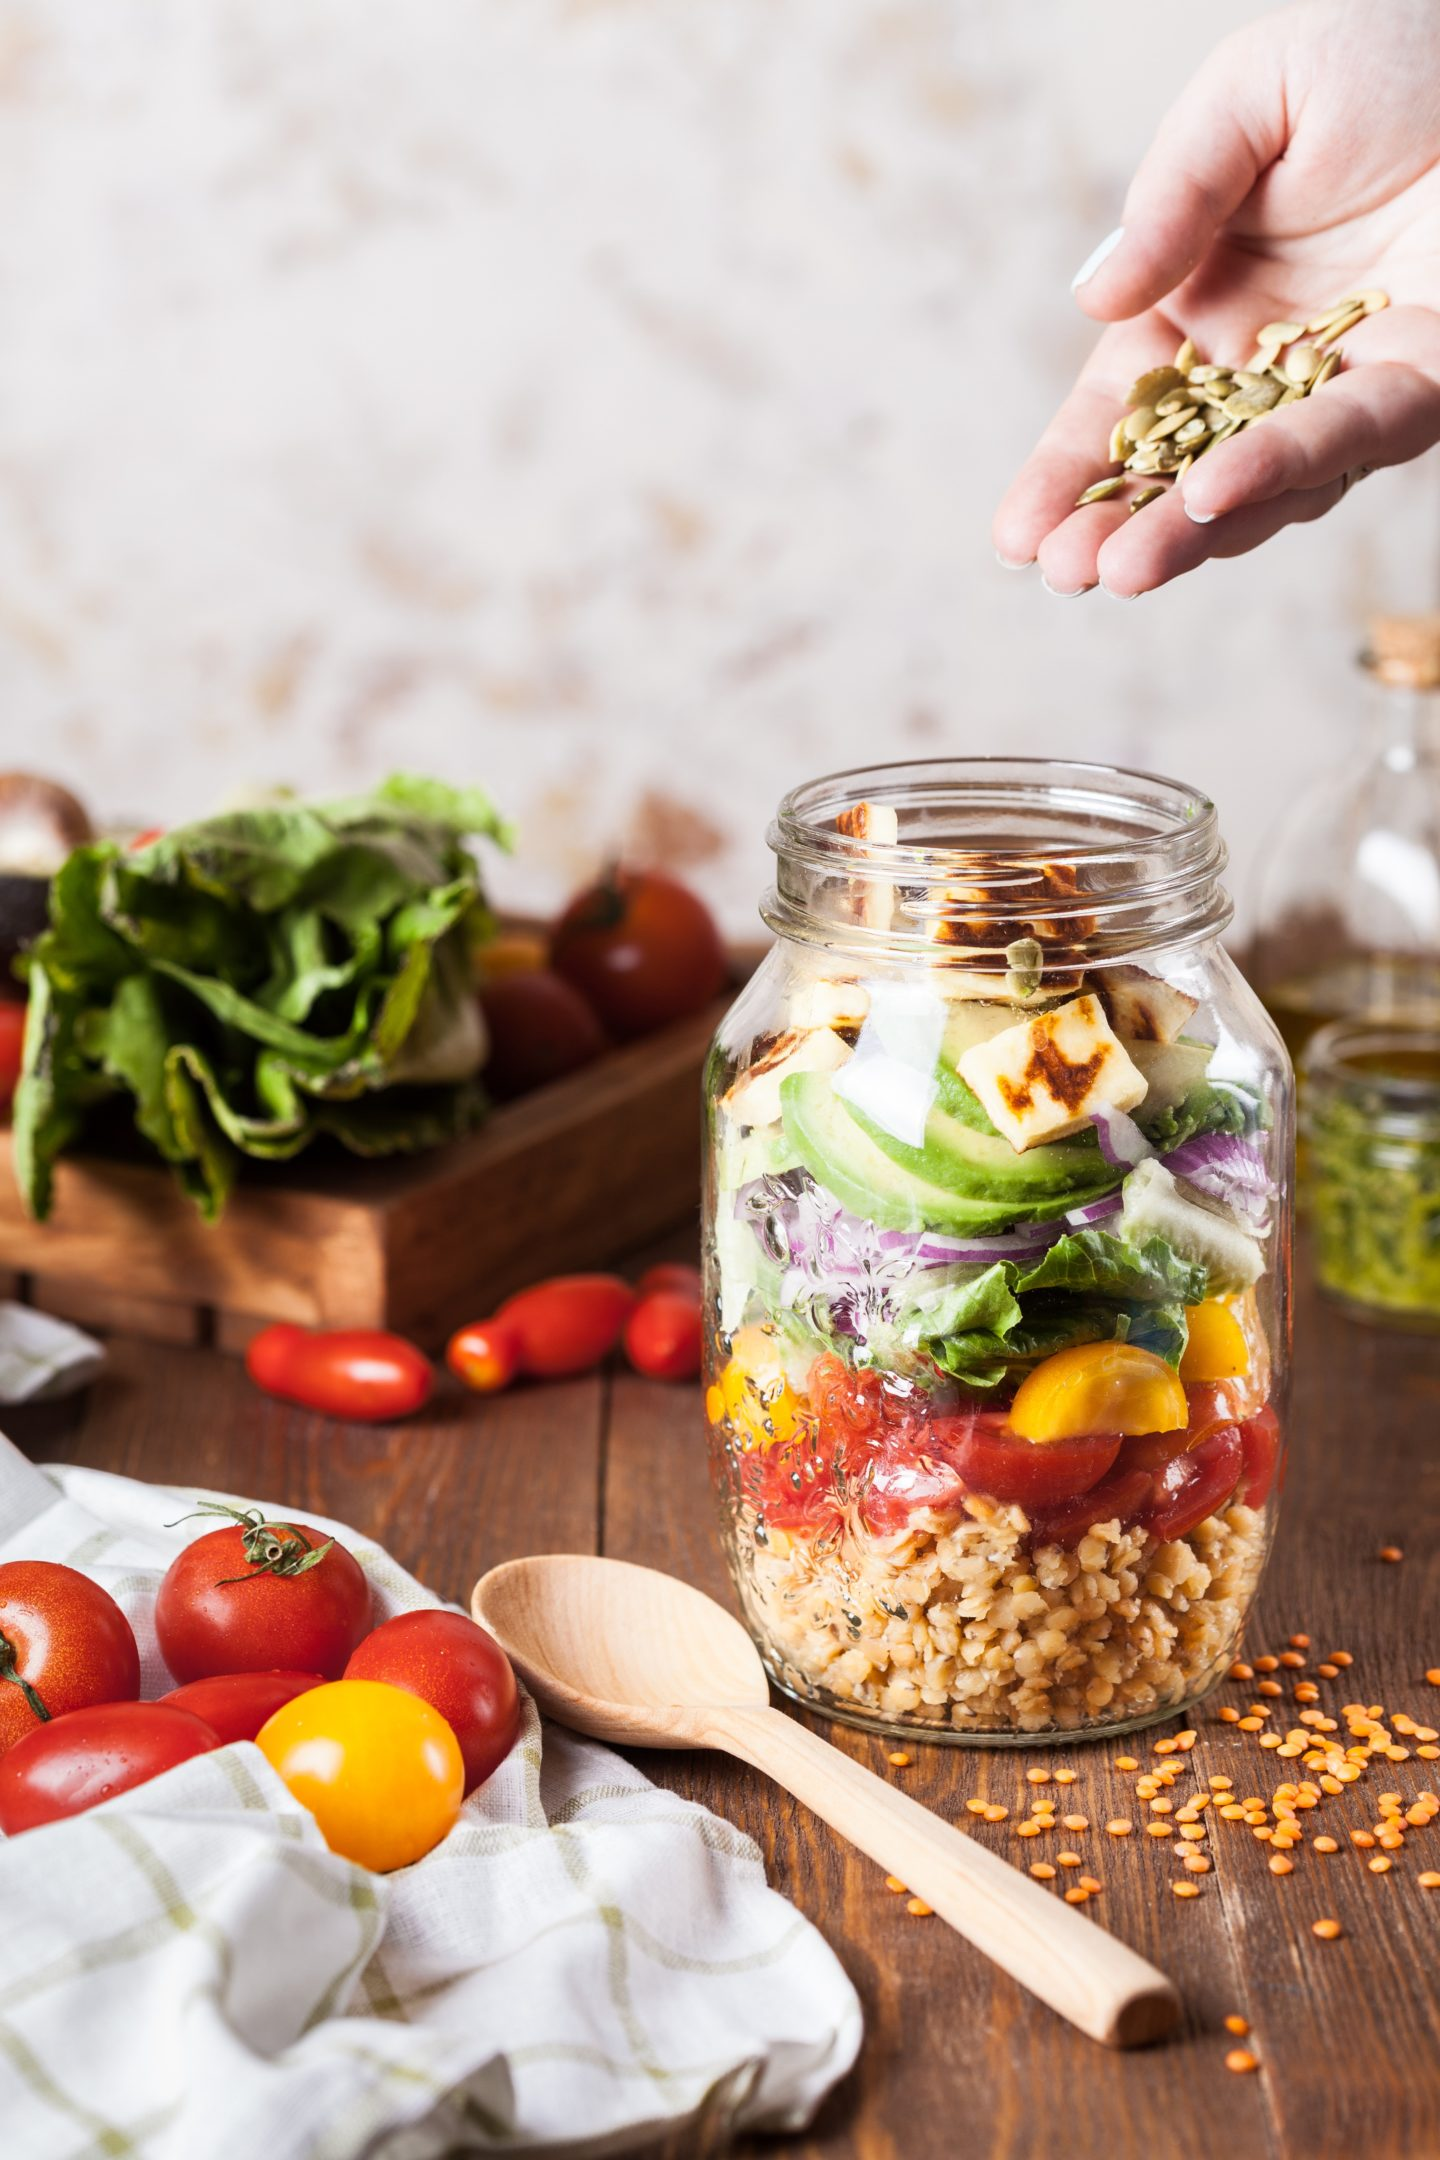 How to eat more ethically